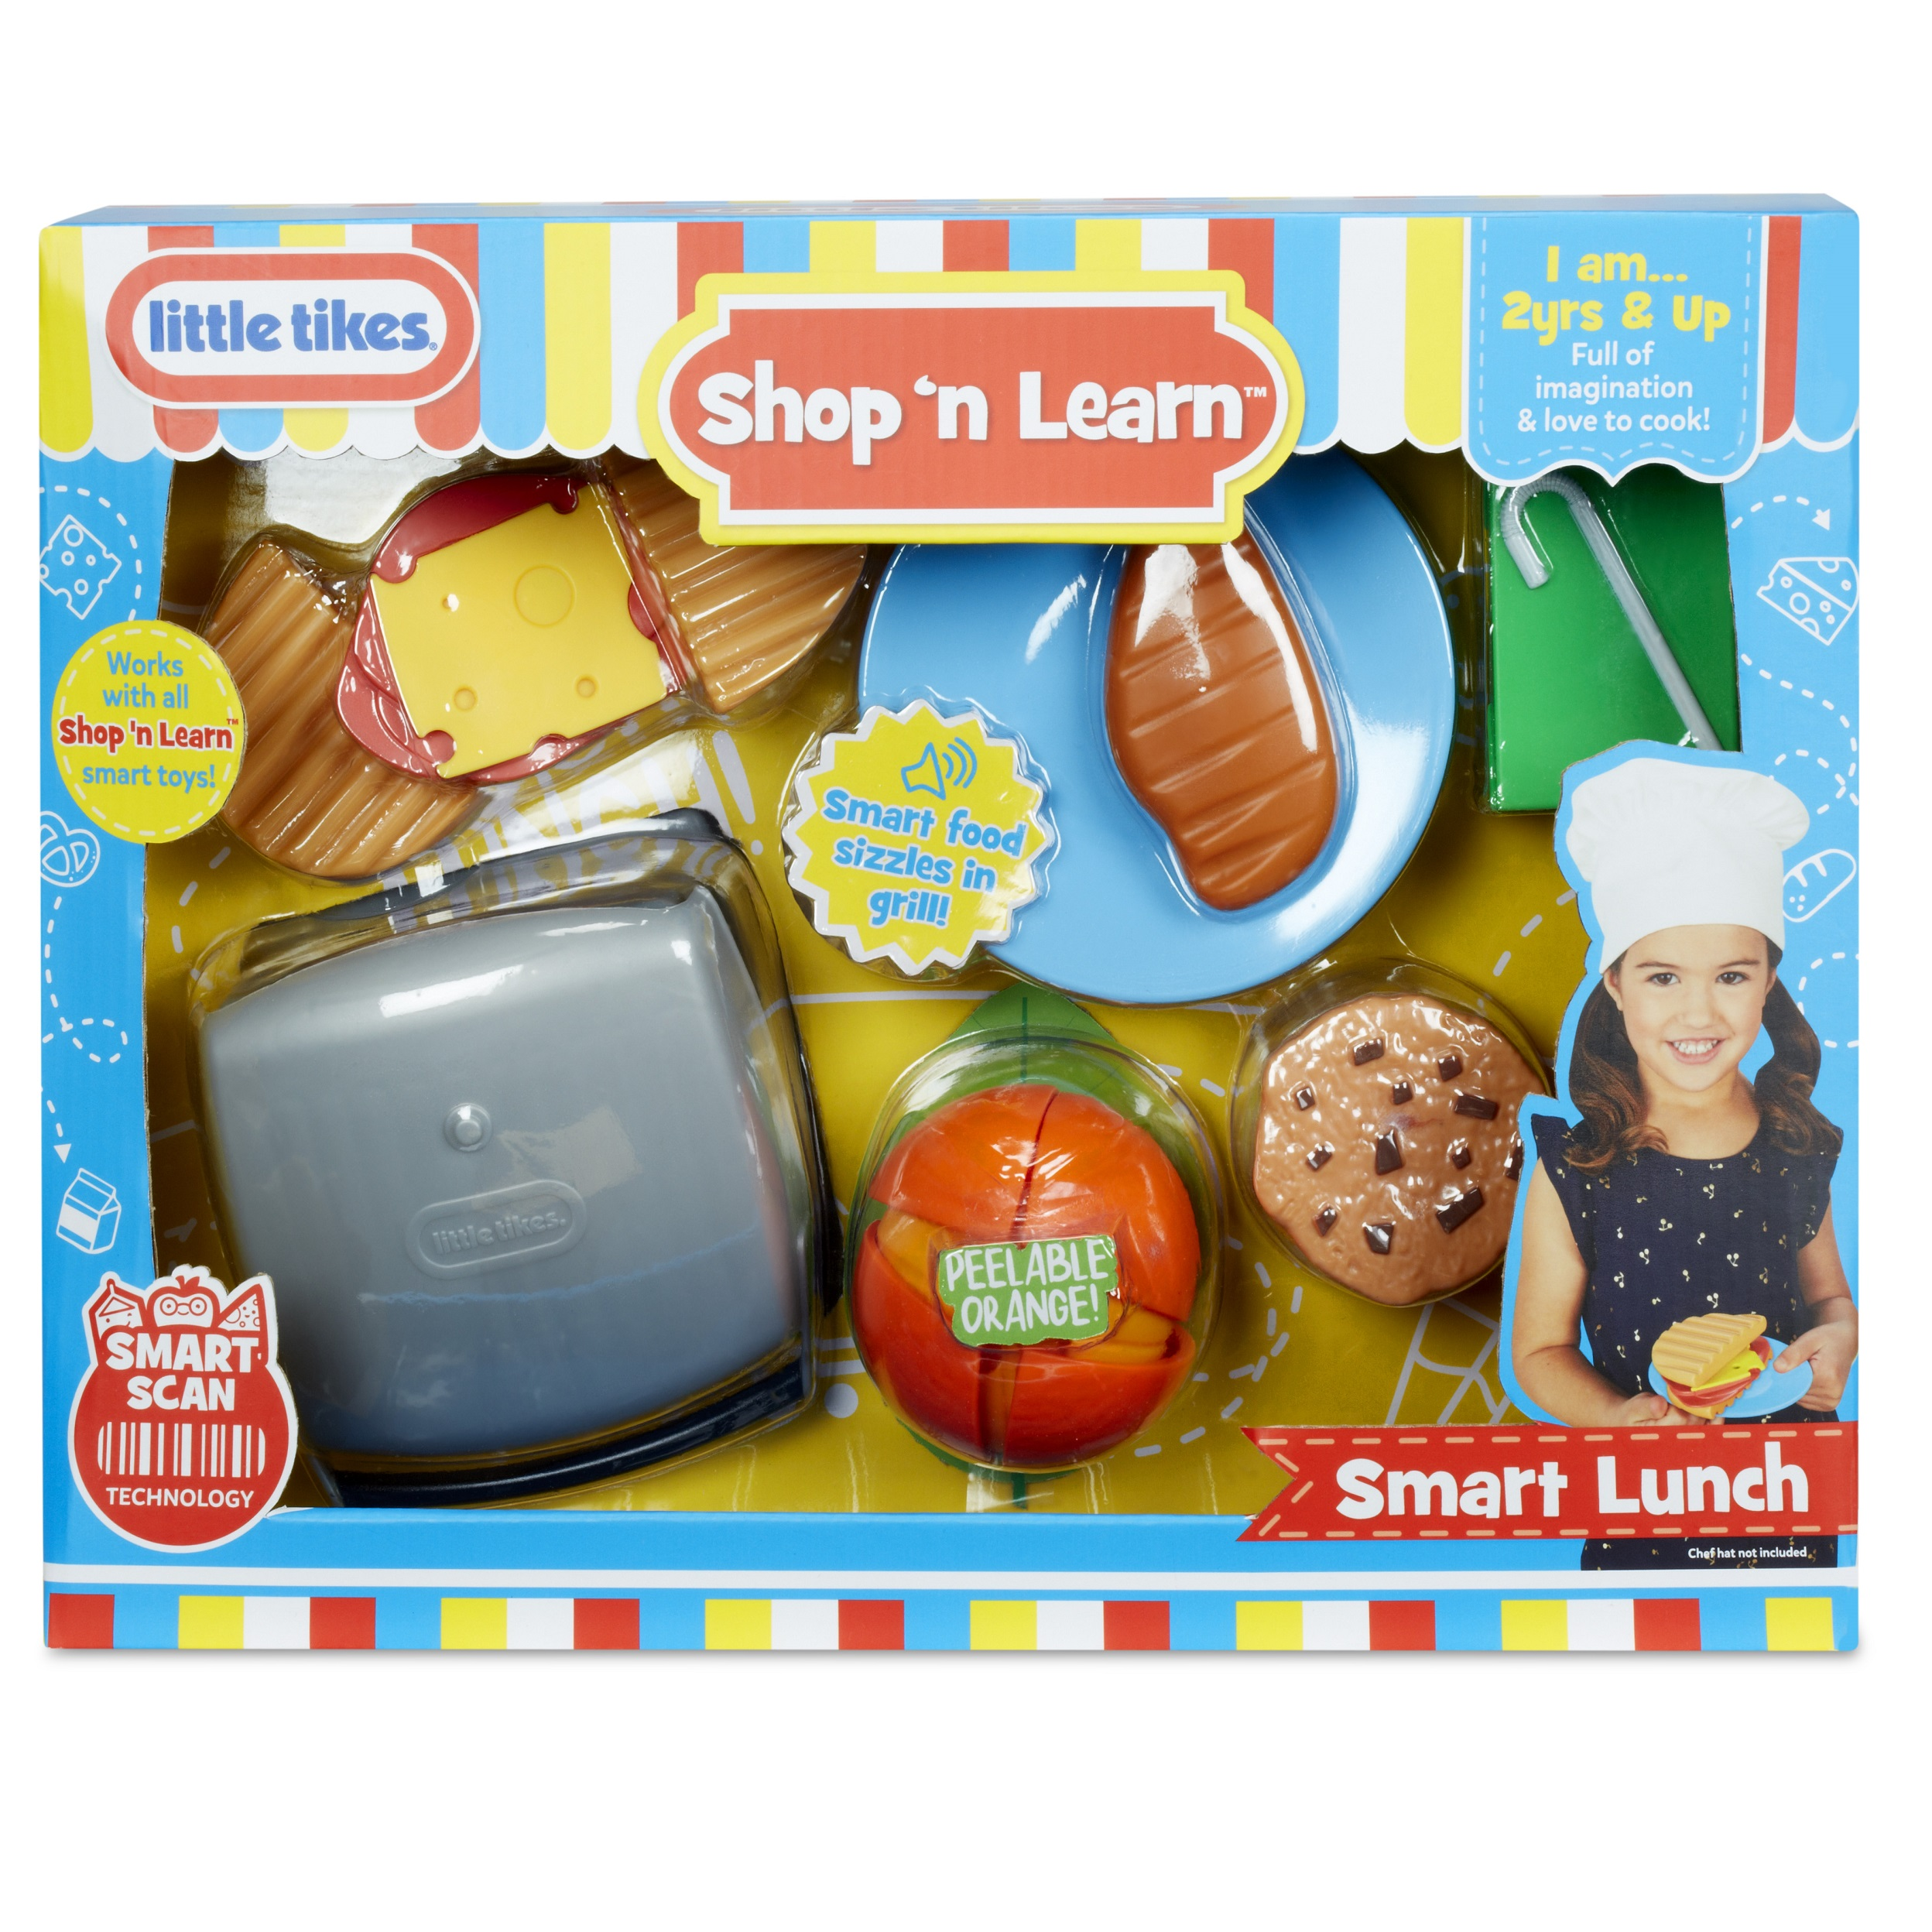 Little Tikes Shop 'n Learn Lunch by MGA Entertainment